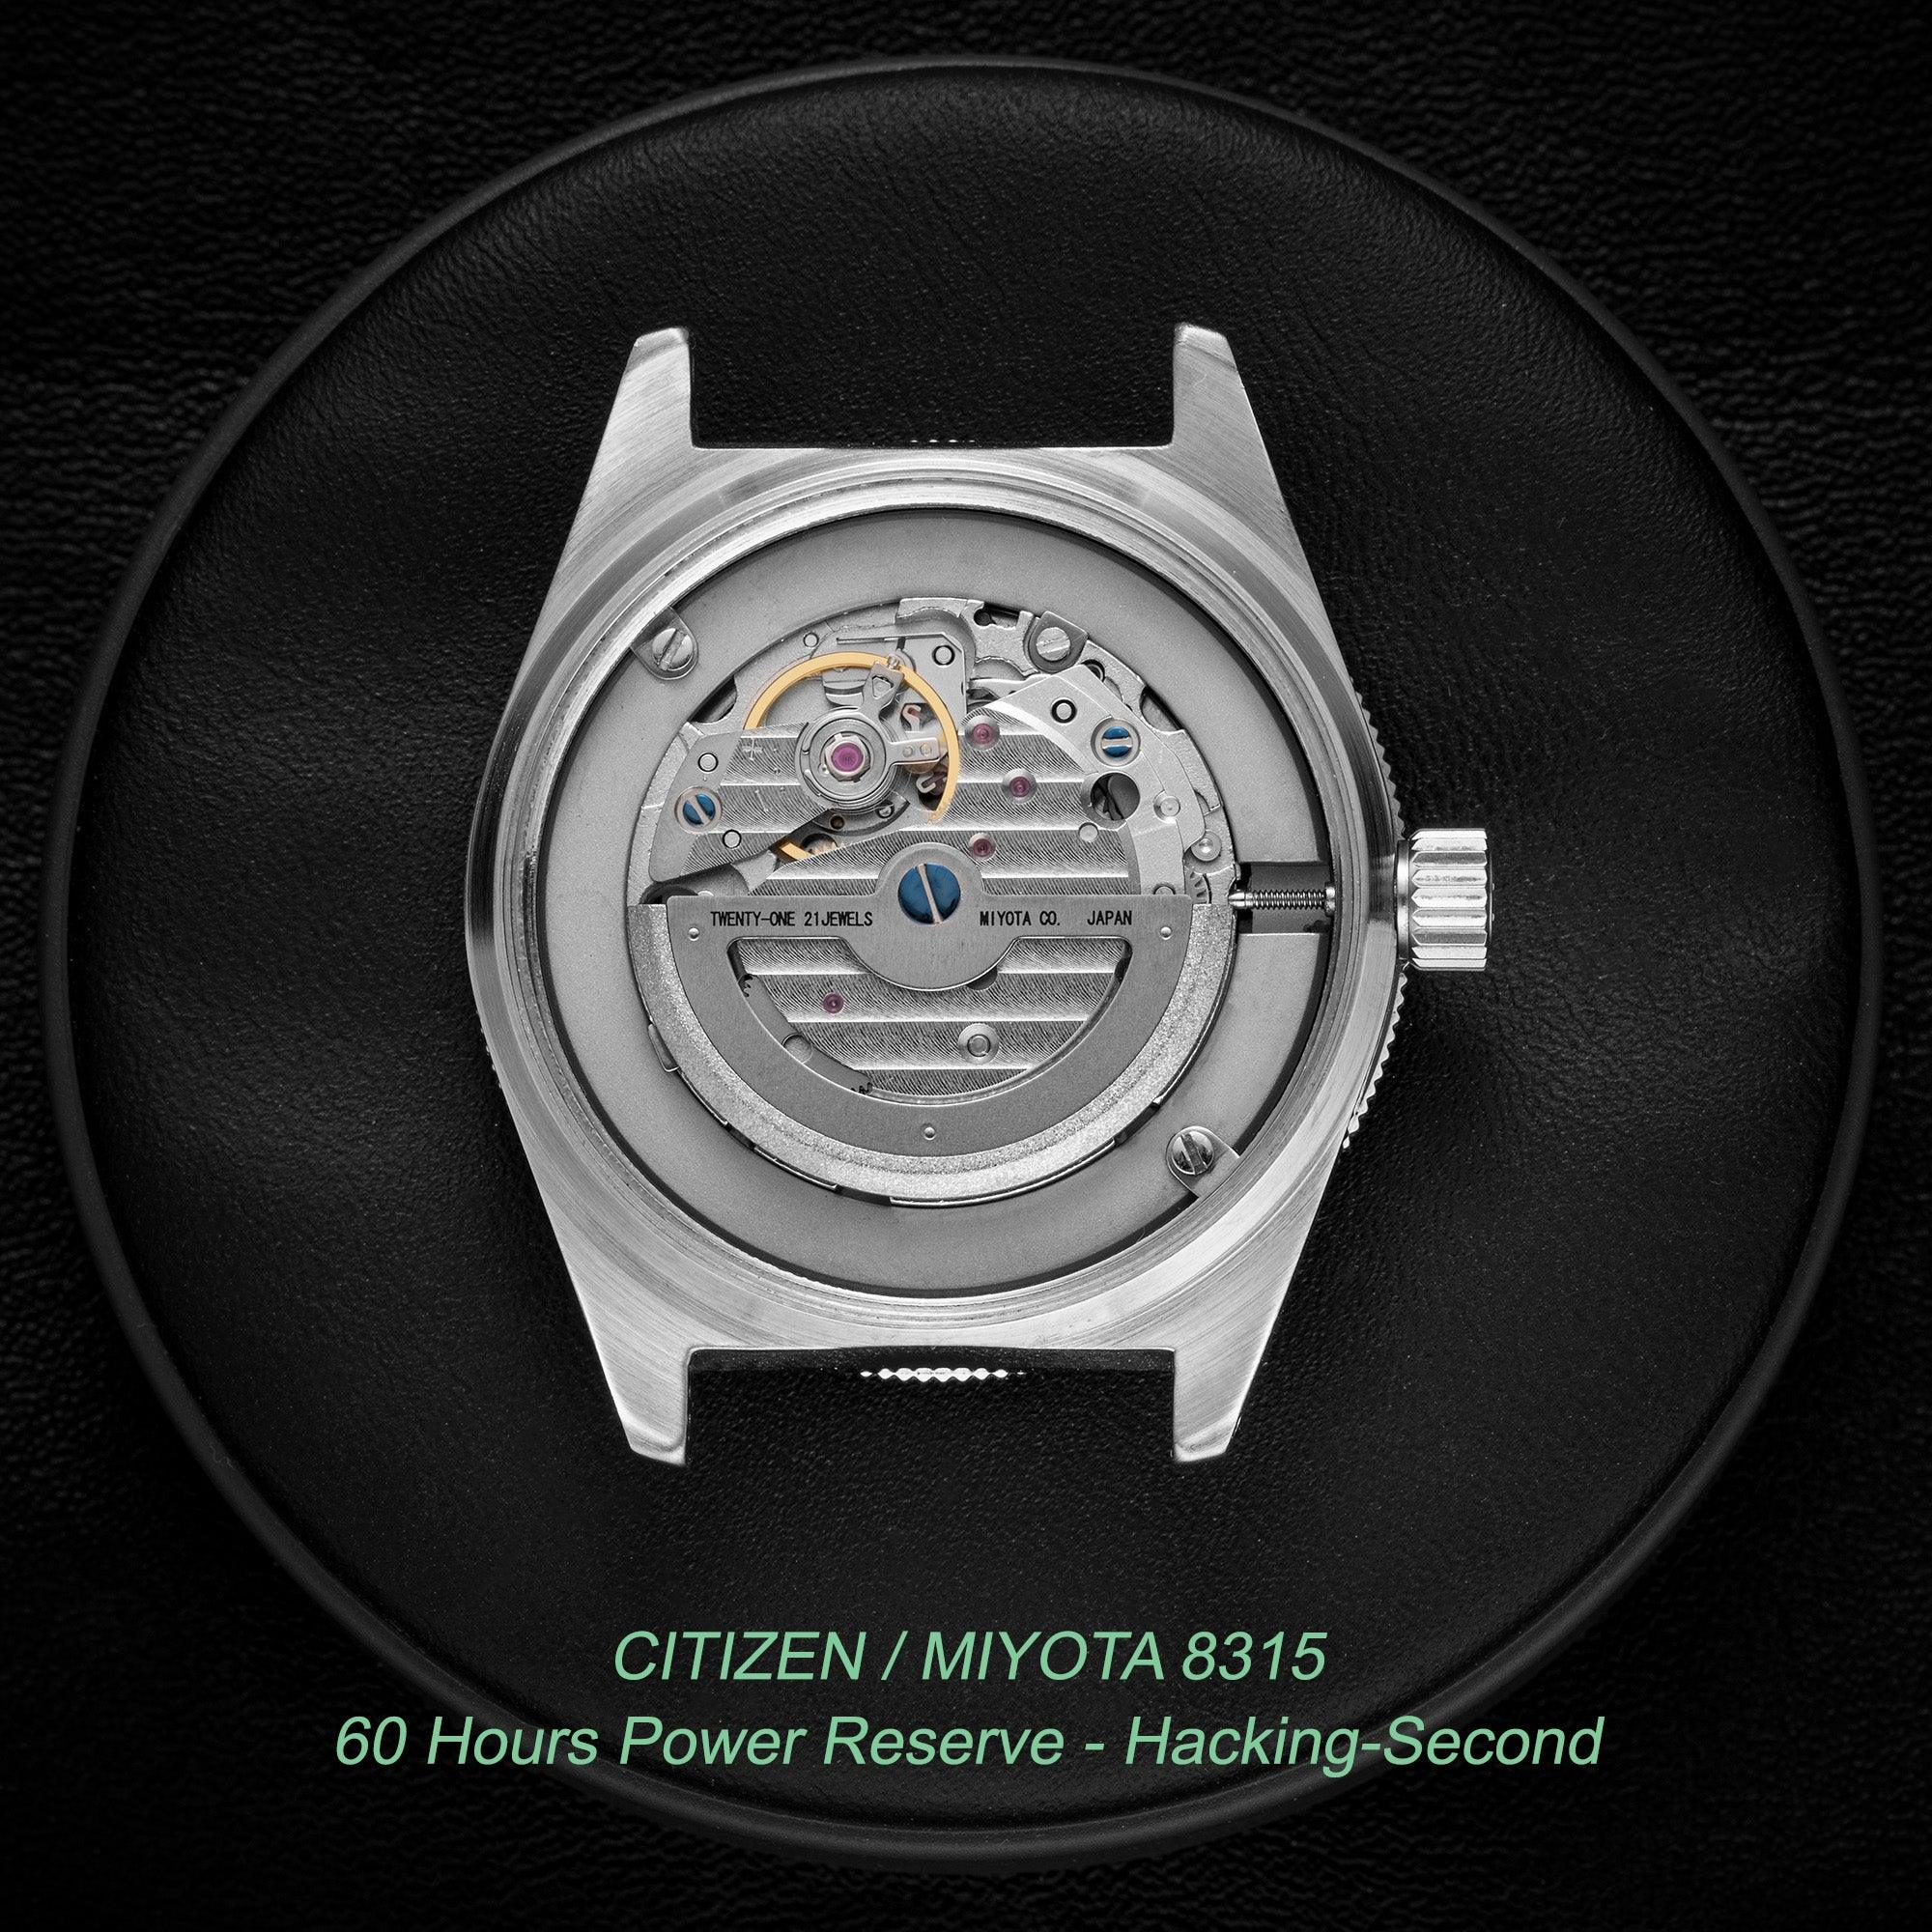 Miyota 8315 with 60 hours power reserve and hacking-second by Citizen